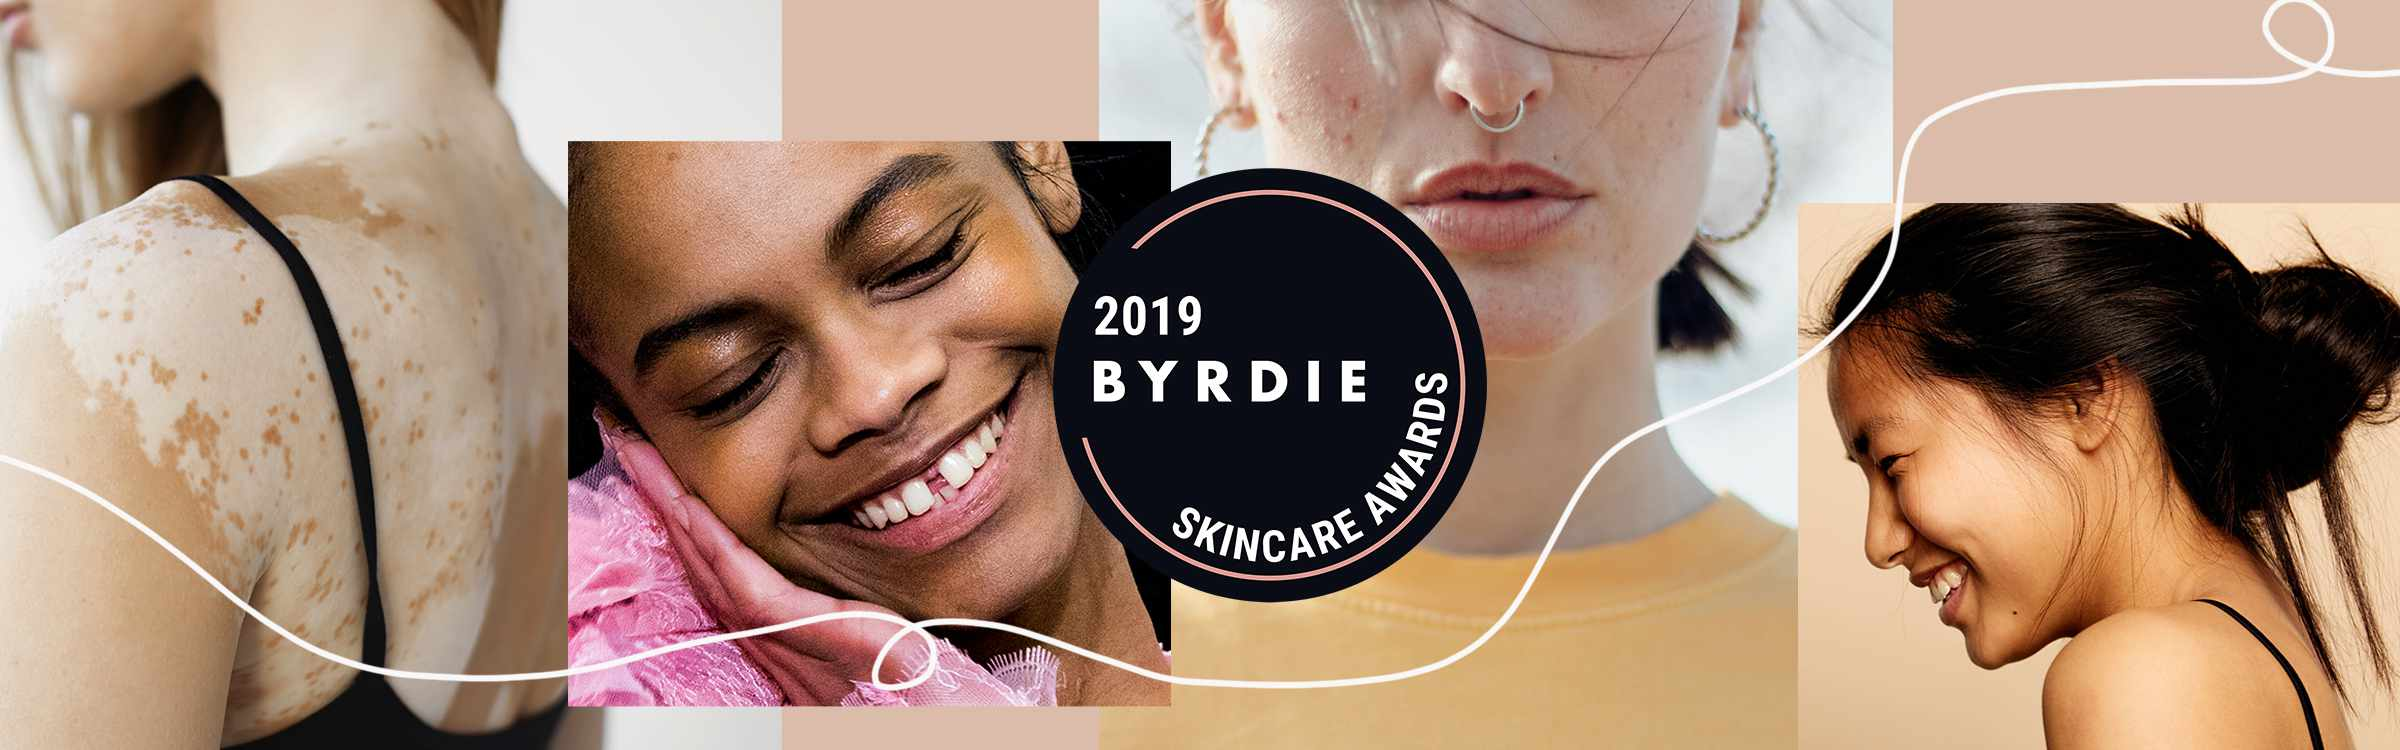 Behold: The Winners of Byrdie's 2019 Skincare Awards